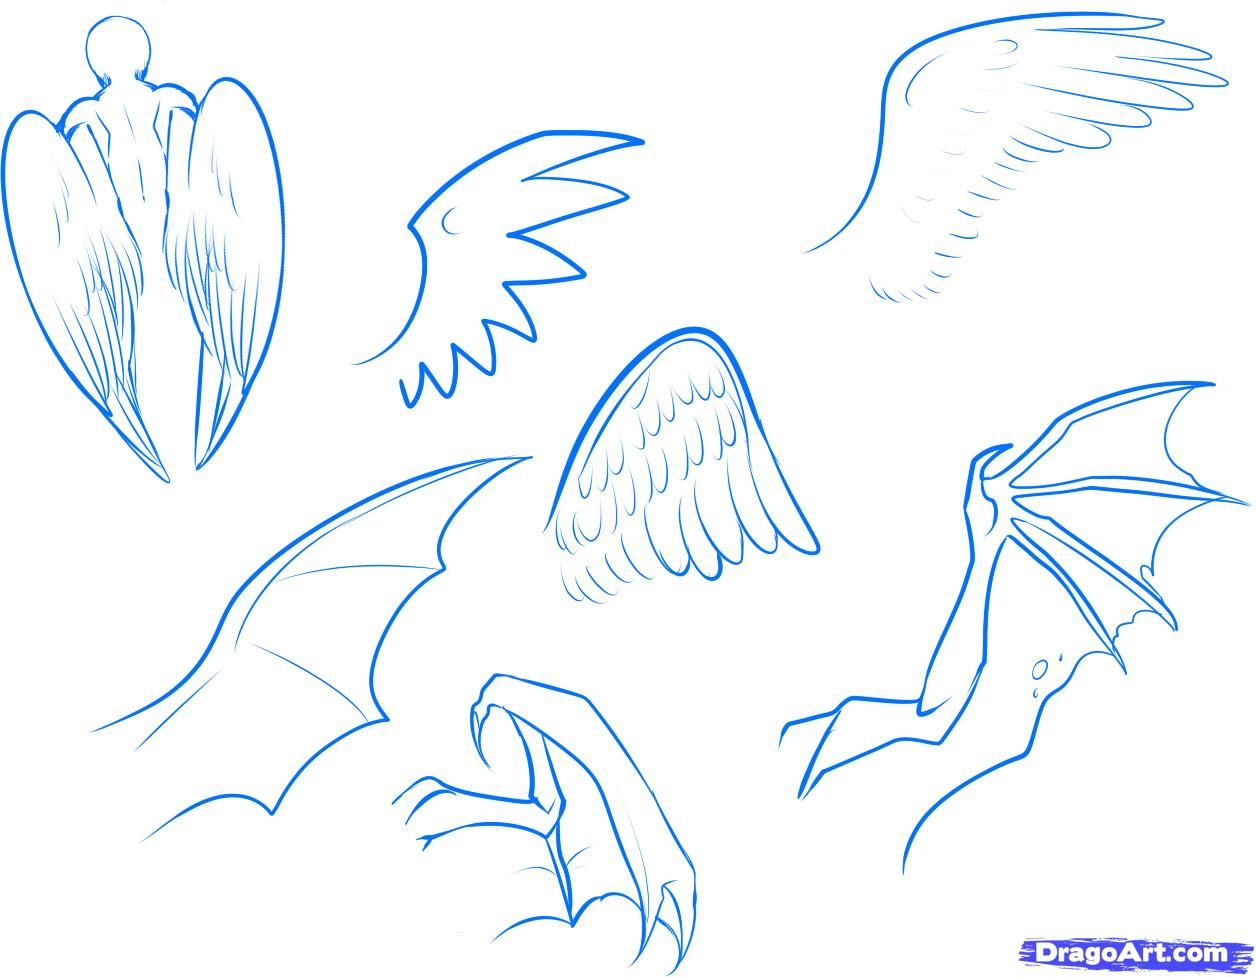 How To Draw Anime Wings Draw An Anime Angel Step By Step Anime Males Anime Draw Japanese Anime Draw Manga Fre Anime Drawings Wings Drawing Manga Drawing